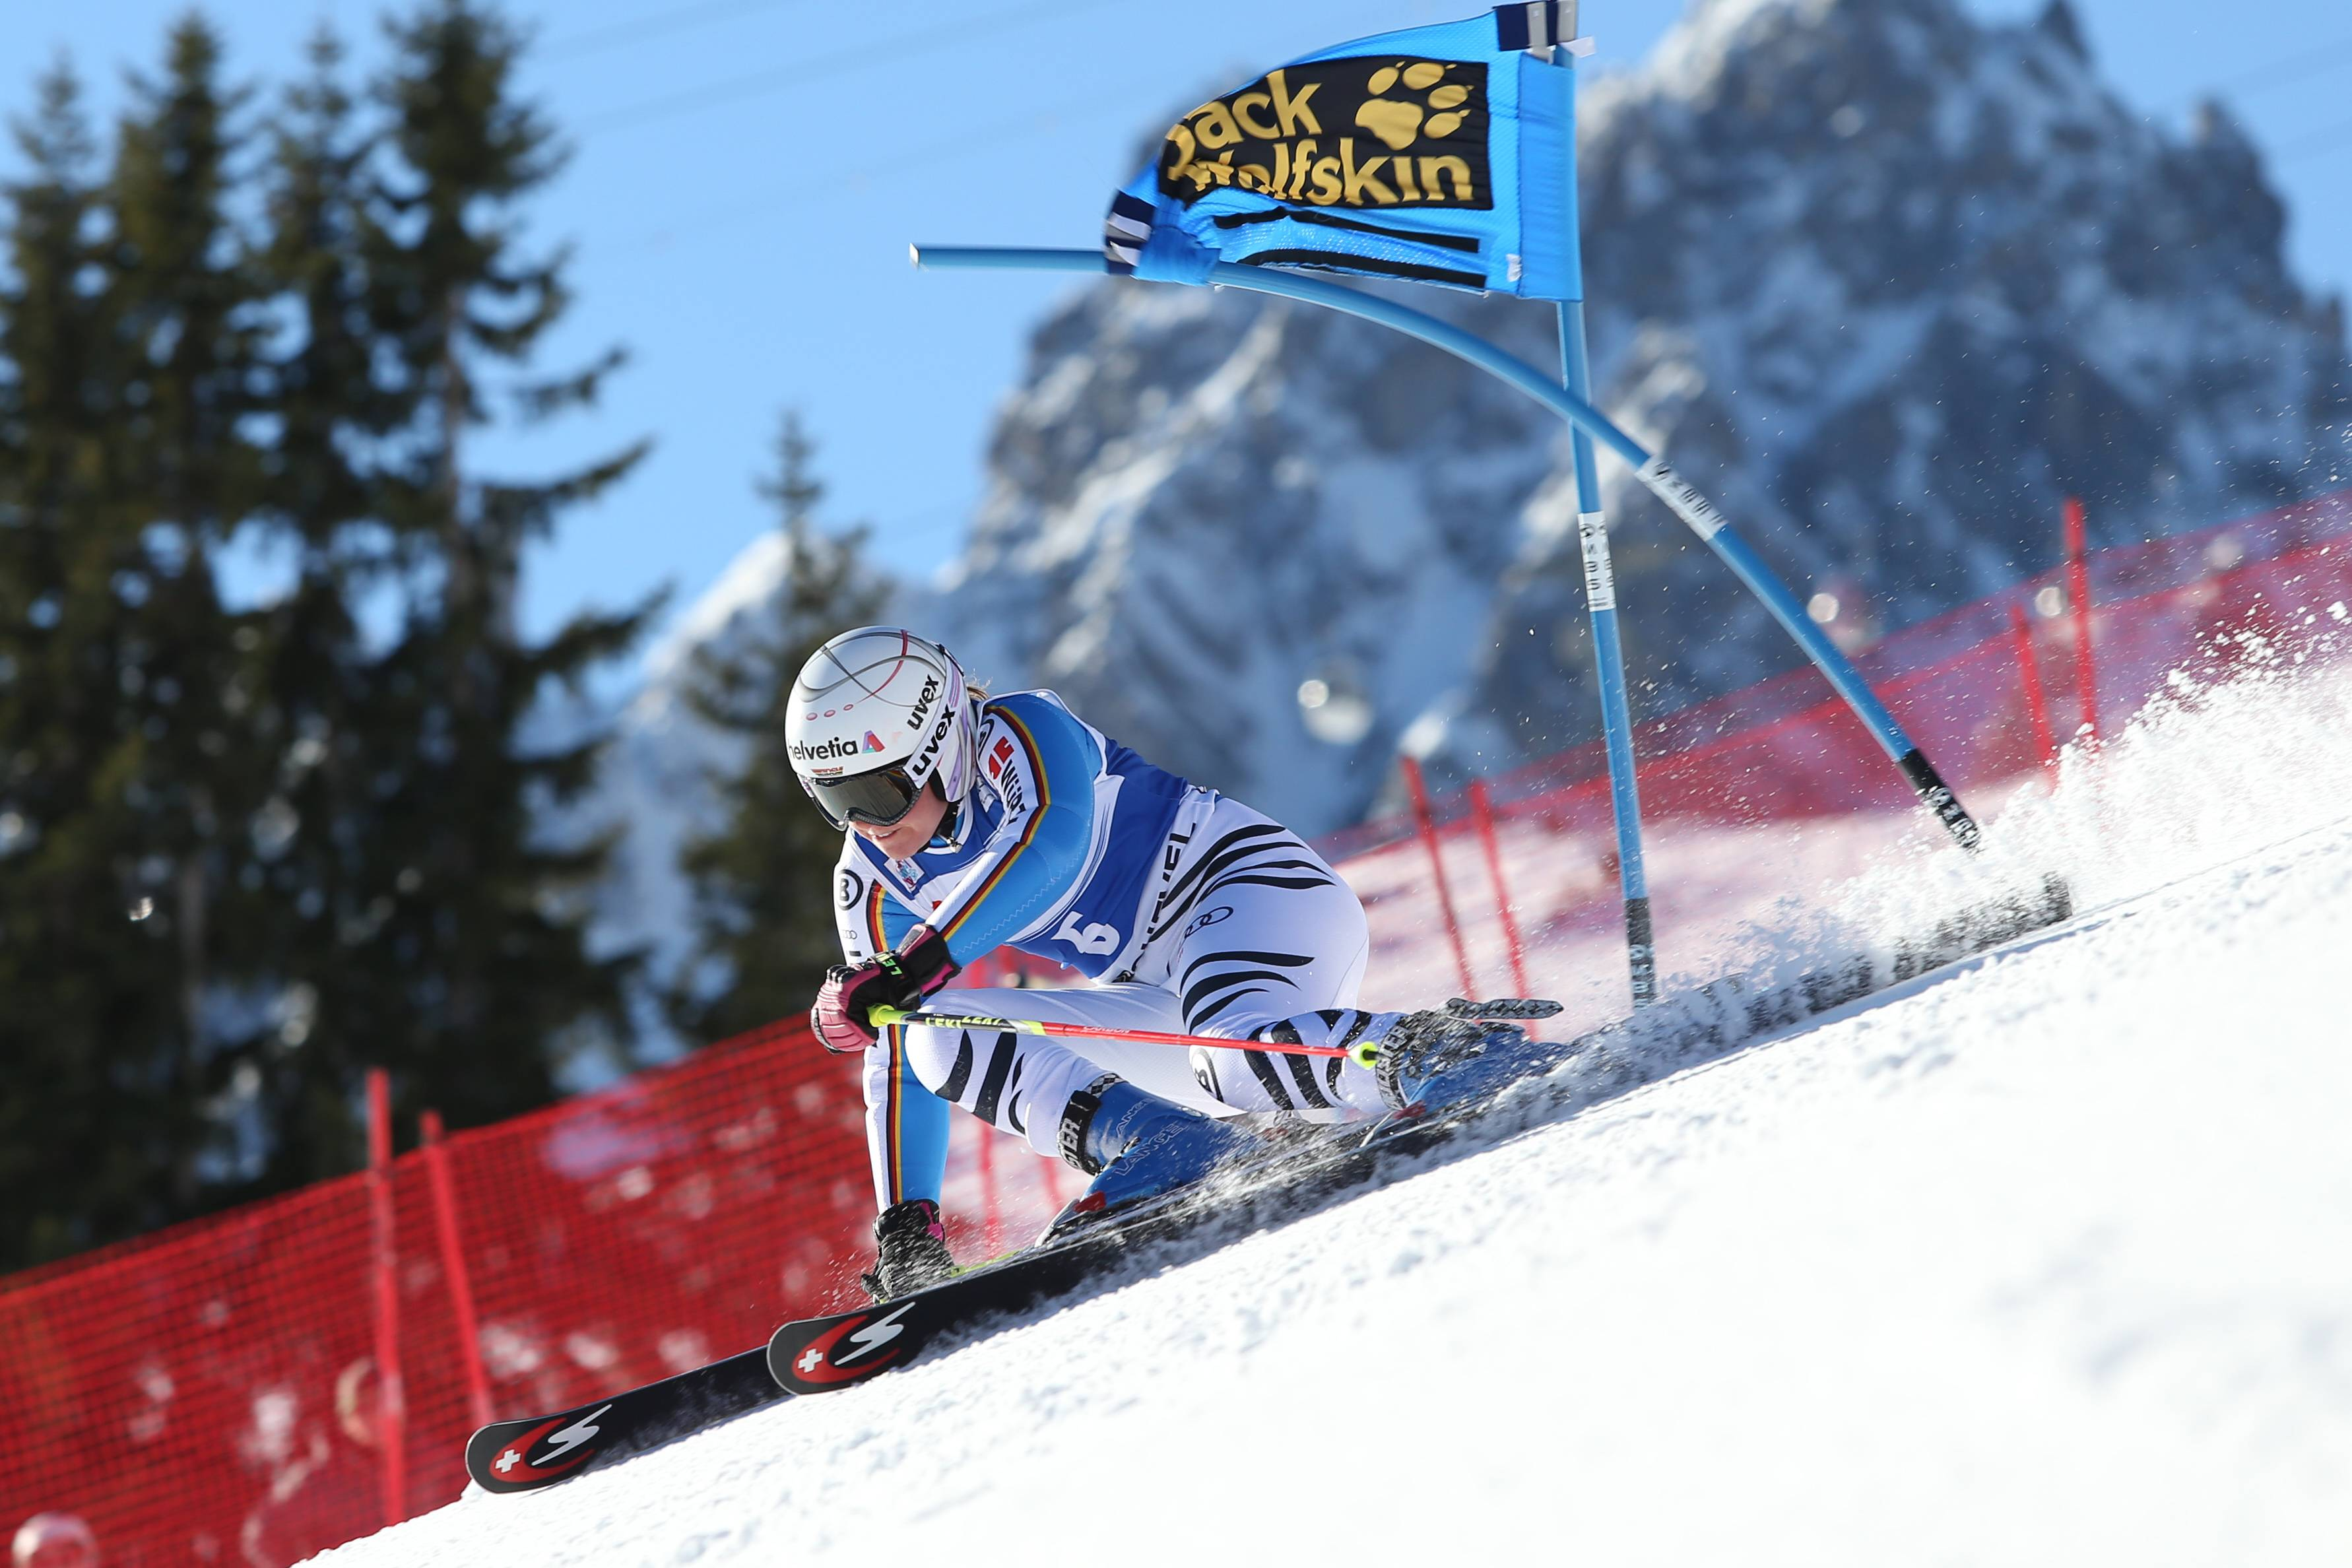 Ski Alpin, WC In Courchevel, Damen Riesenslalom ALPINE SKIING - FIS WC Courchevel COURCHEVEL,FRANCE,20.DEC.15 - ALPINE SKIING - FIS World Cup, Giant Slalom, Ladies. Image Shows Viktoria Rebensburg (GER). Keywords: Stoeckli. PUBLICATIONxINxGERxHUNxONLY GEPAxpictures/xMathiasxMandl  Ski Alpine WC In Courchevel Women Giant Slalom Alpine Skiing FIS WC Courchevel Courchevel France 20 DEC 15 Alpine Skiing FIS World Cup Giant Slalom Ladies Image Shows Viktoria Vine Castle Ger Keywords Stoeckli PUBLICATIONxINxGERxHUNxONLY GEPAxpictures XMathiasxMandl